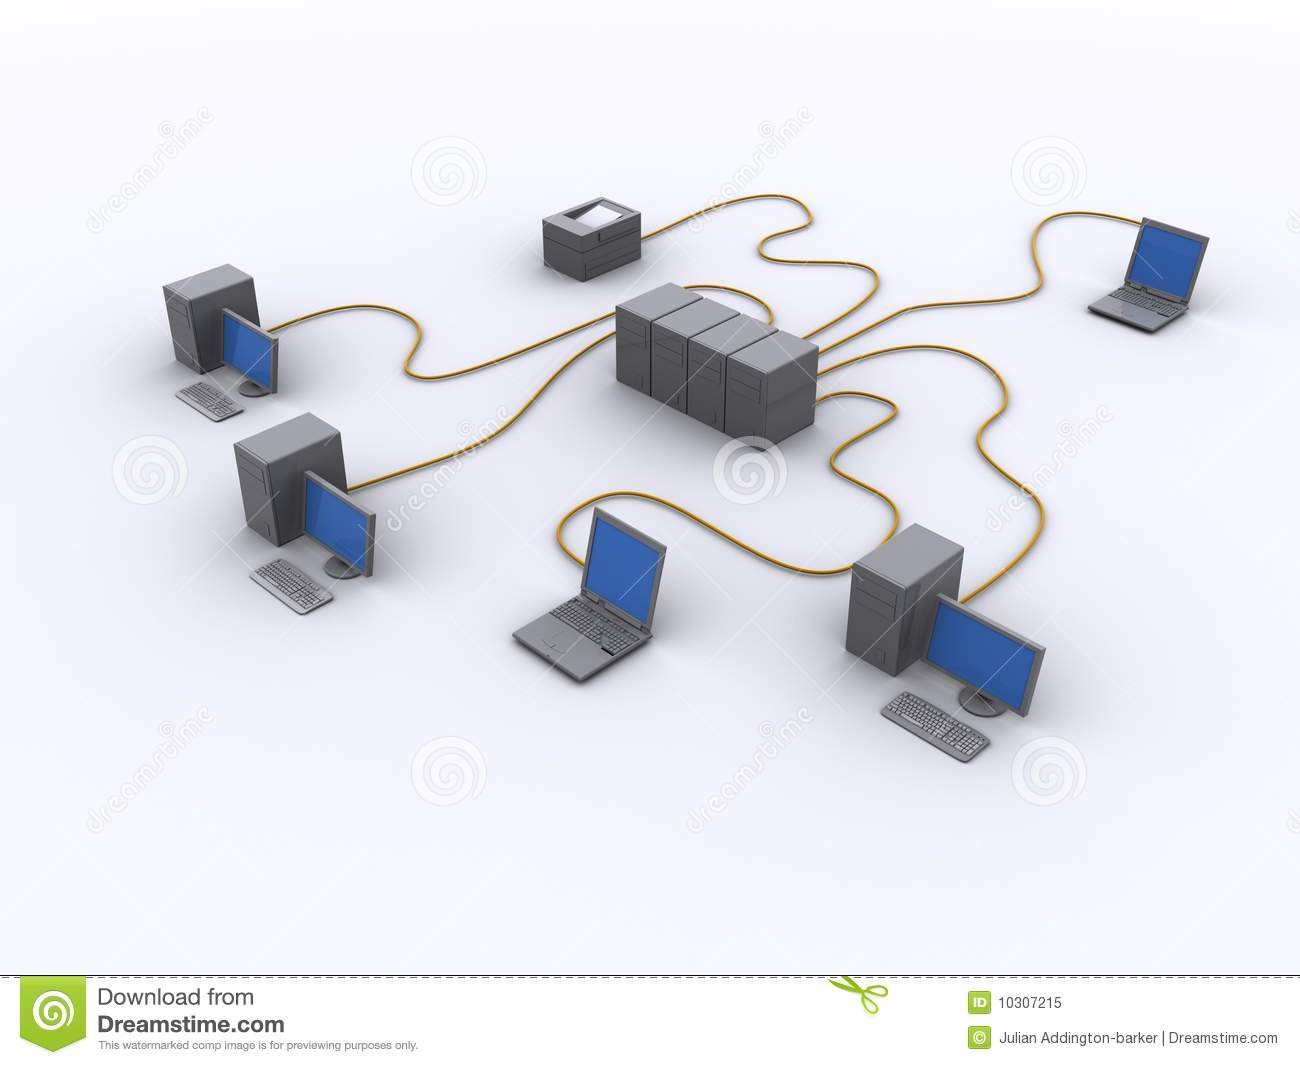 wired network diagram 10307215 wired network diagram royalty free stock photo image 10307215 wired home network diagram at gsmx.co